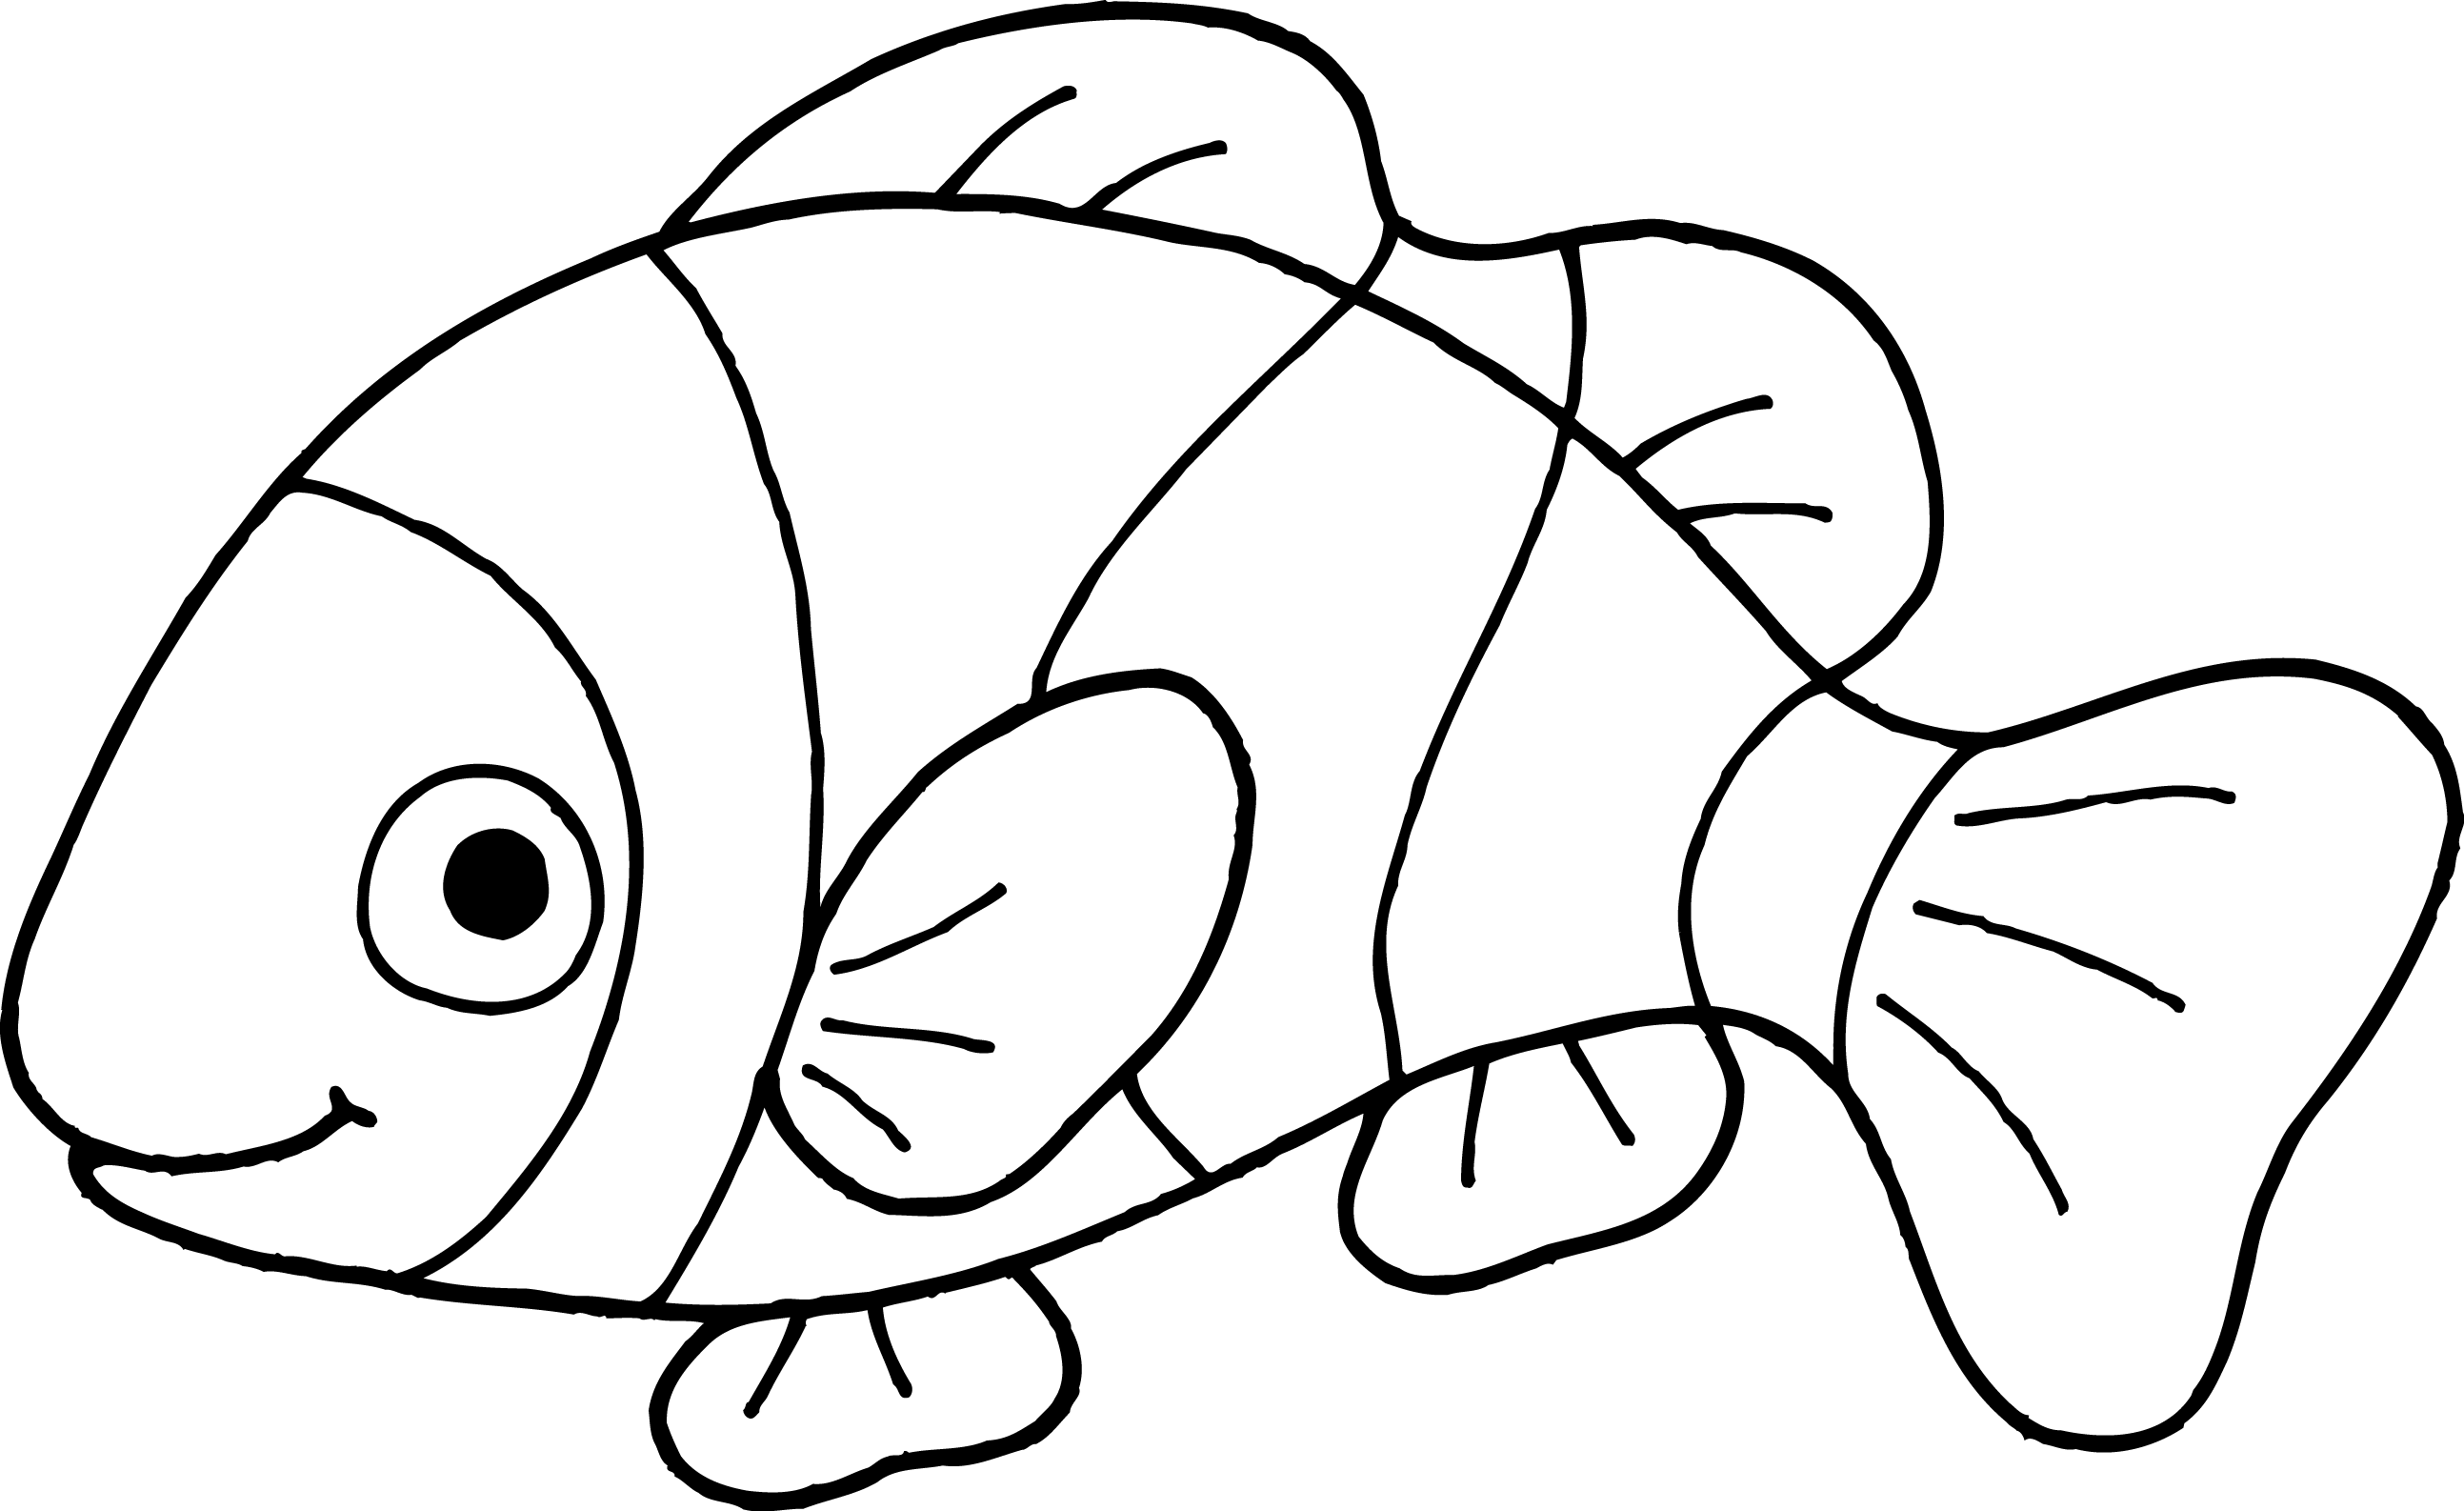 Fish clipart in black and white. Often abbreviated b w